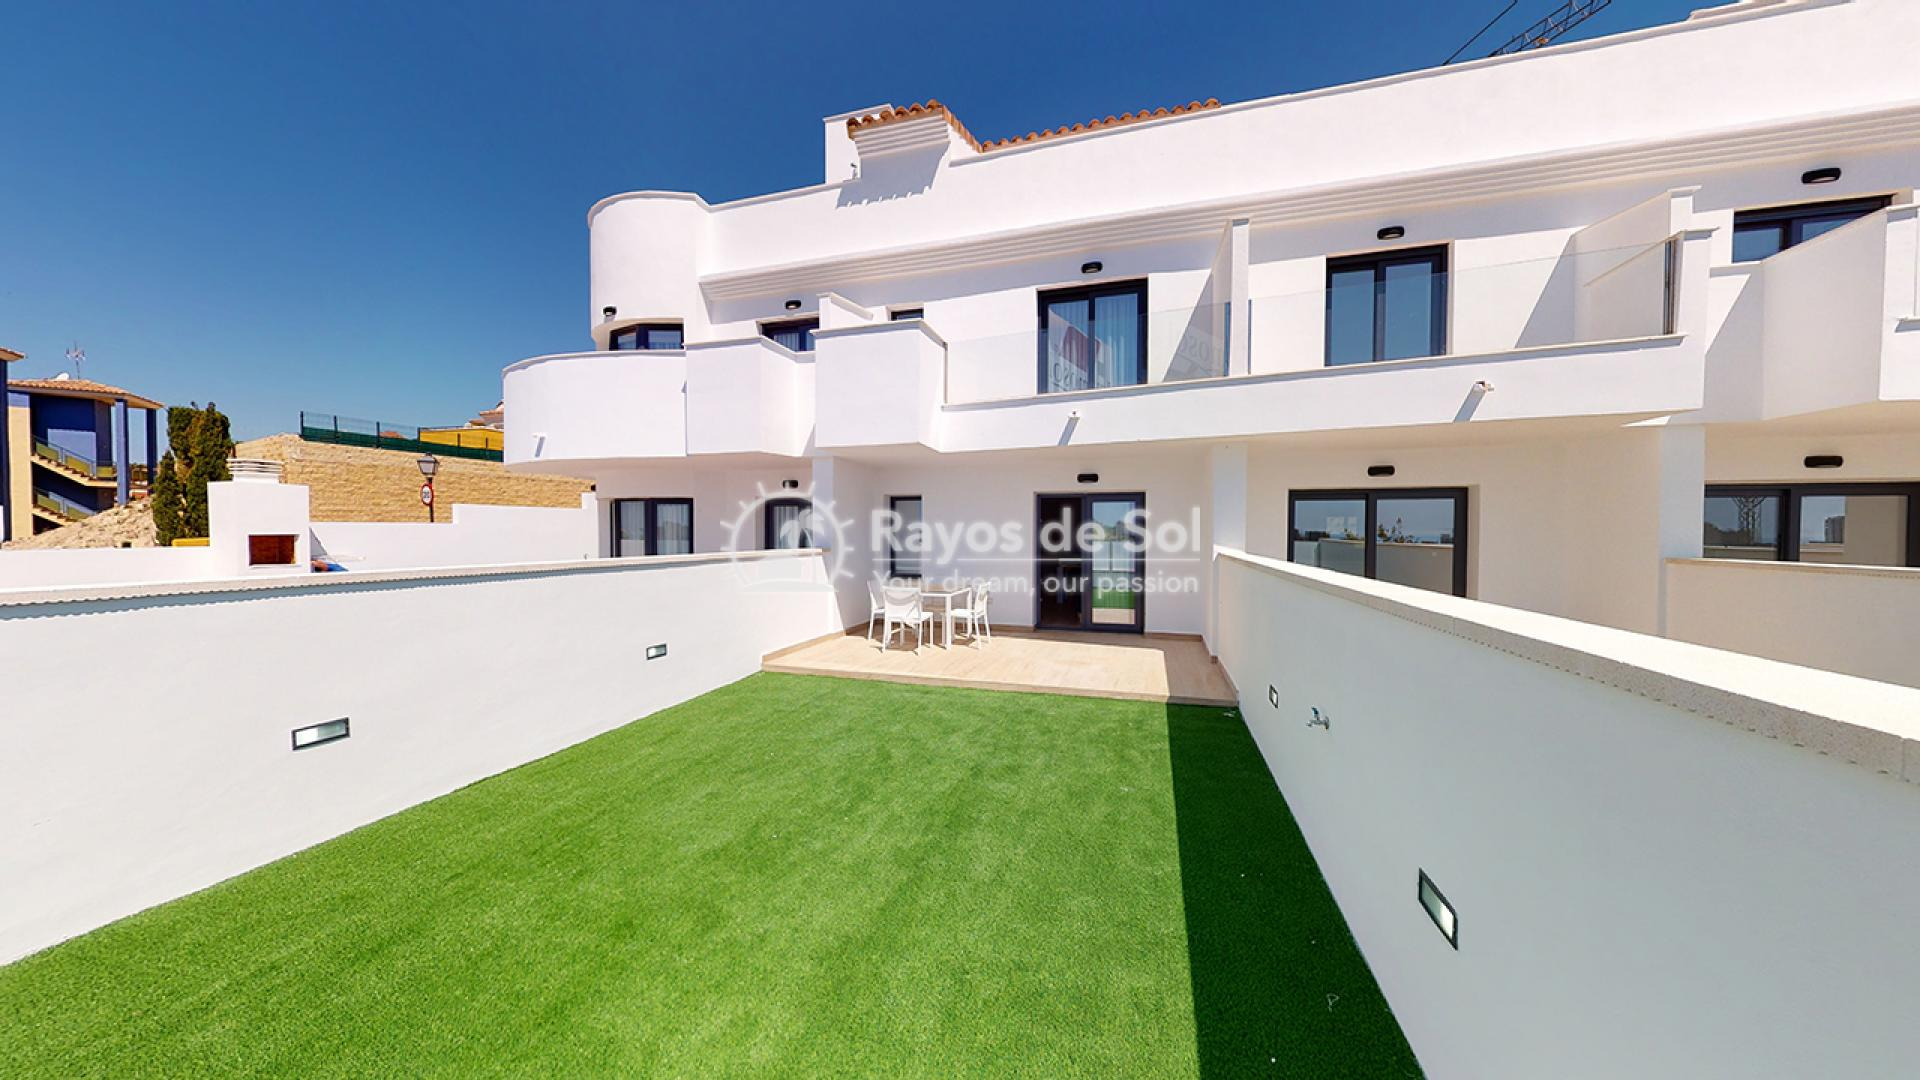 Townhouse  in Finestrat, Costa Blanca (panoramicb-dpx-2d) - 1